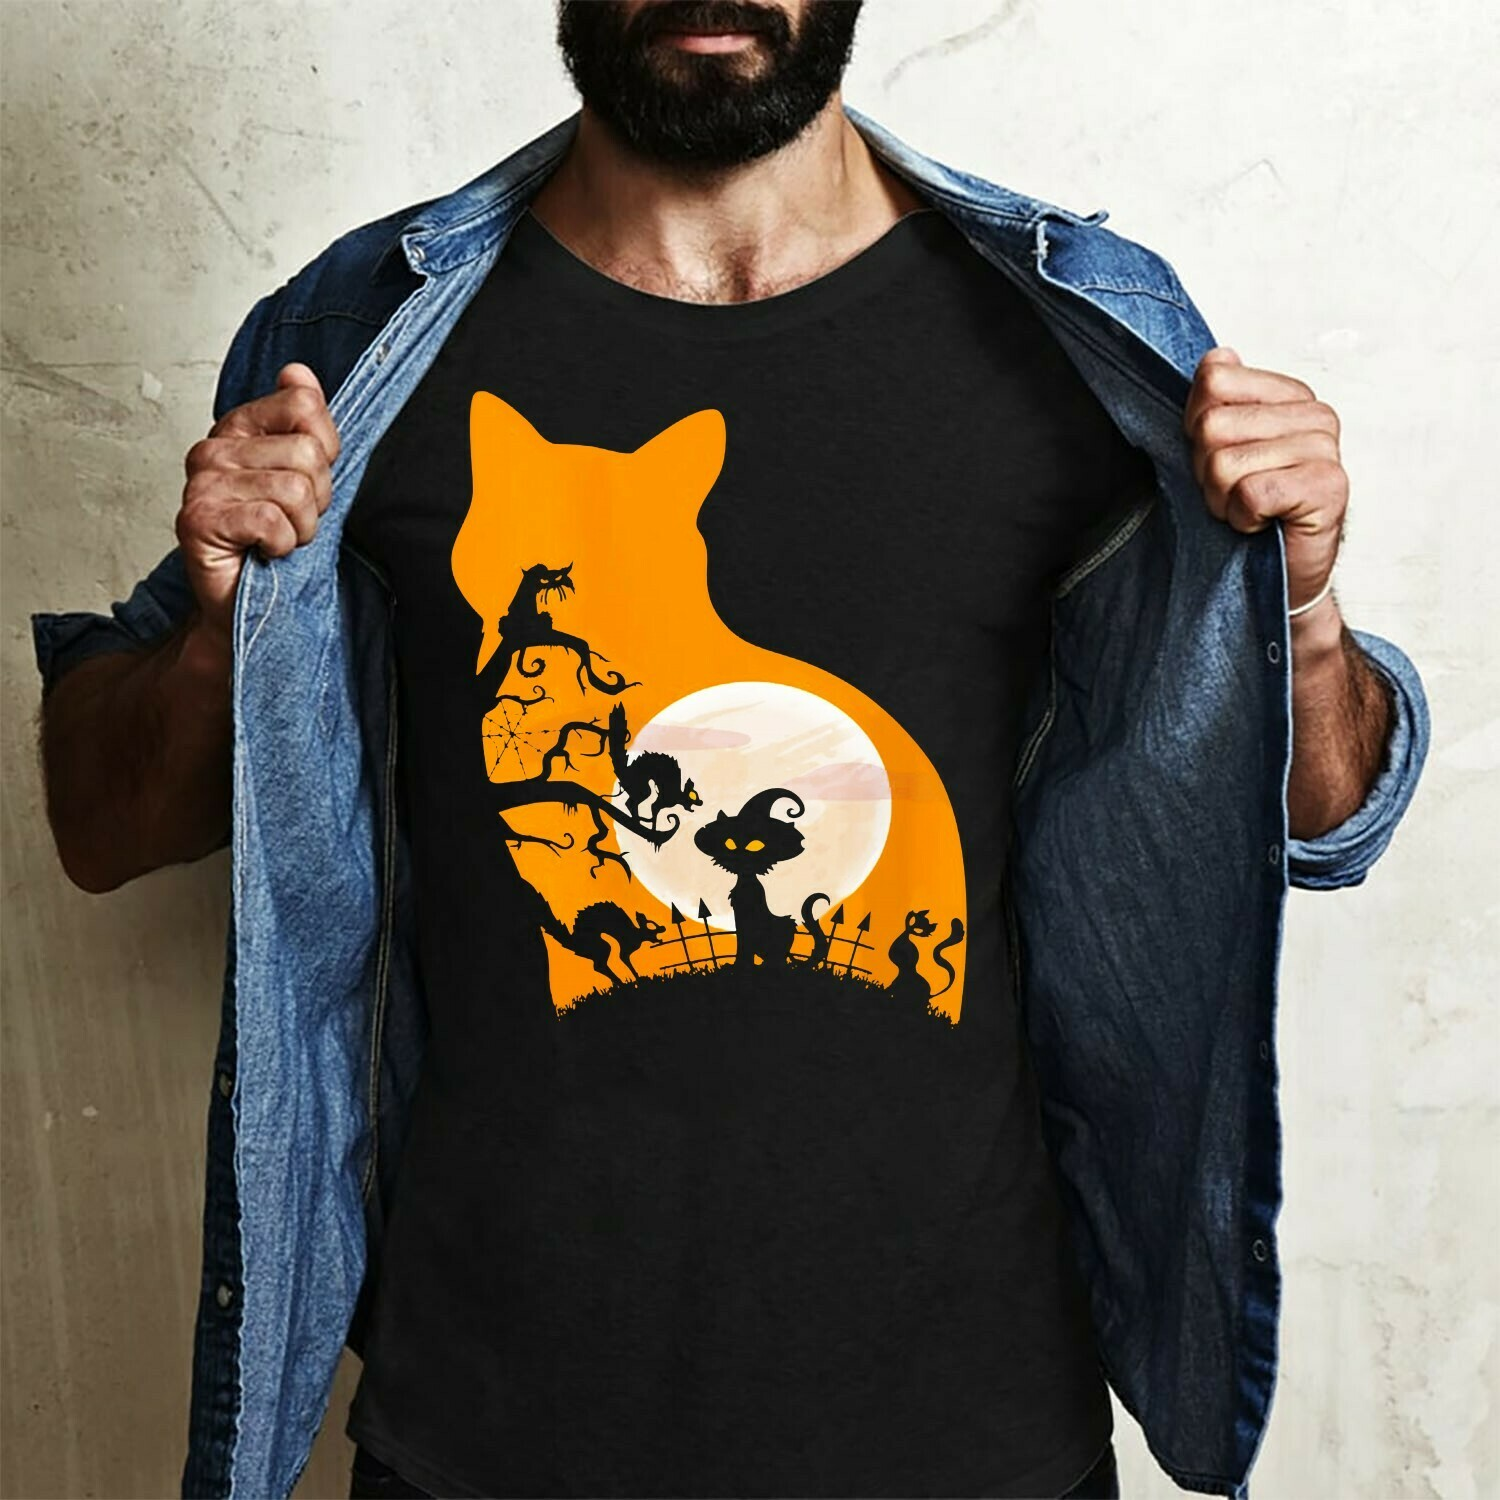 Cat Witch In The Moonlight Halloween Black Cat Lady Not So Scary Gift for Loves Halloween Day Family Vacation Team Party Gifts T-Shirt Long Sleeve Sweatshirt Hoodie Jolly Family Gifts